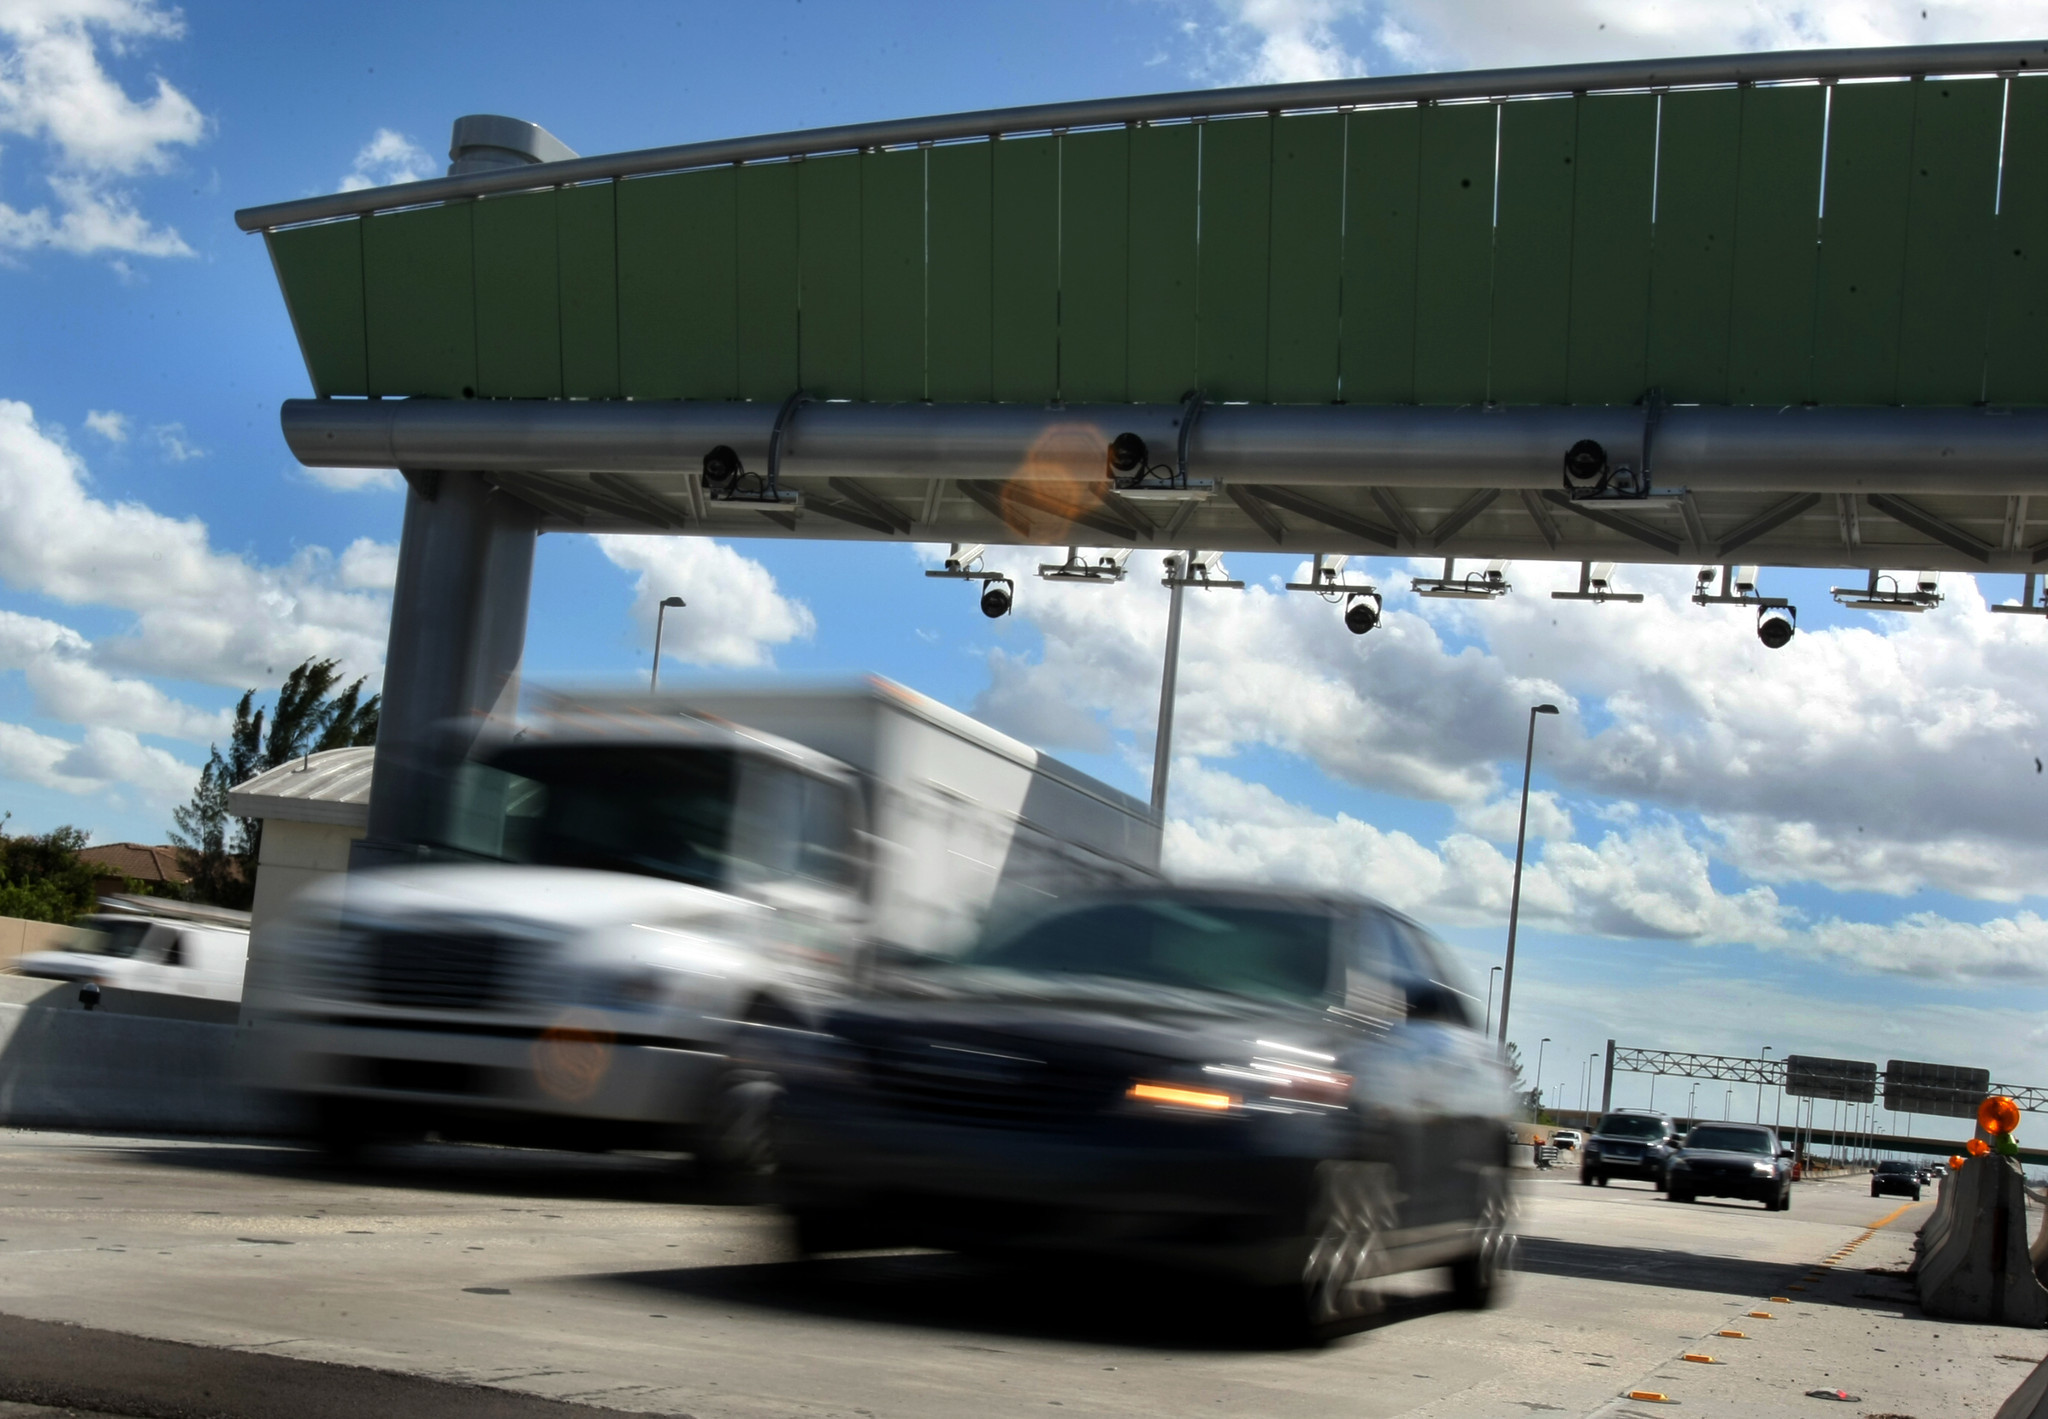 Sunpass Florida Georgia North Carolina Transponders Now Valid In